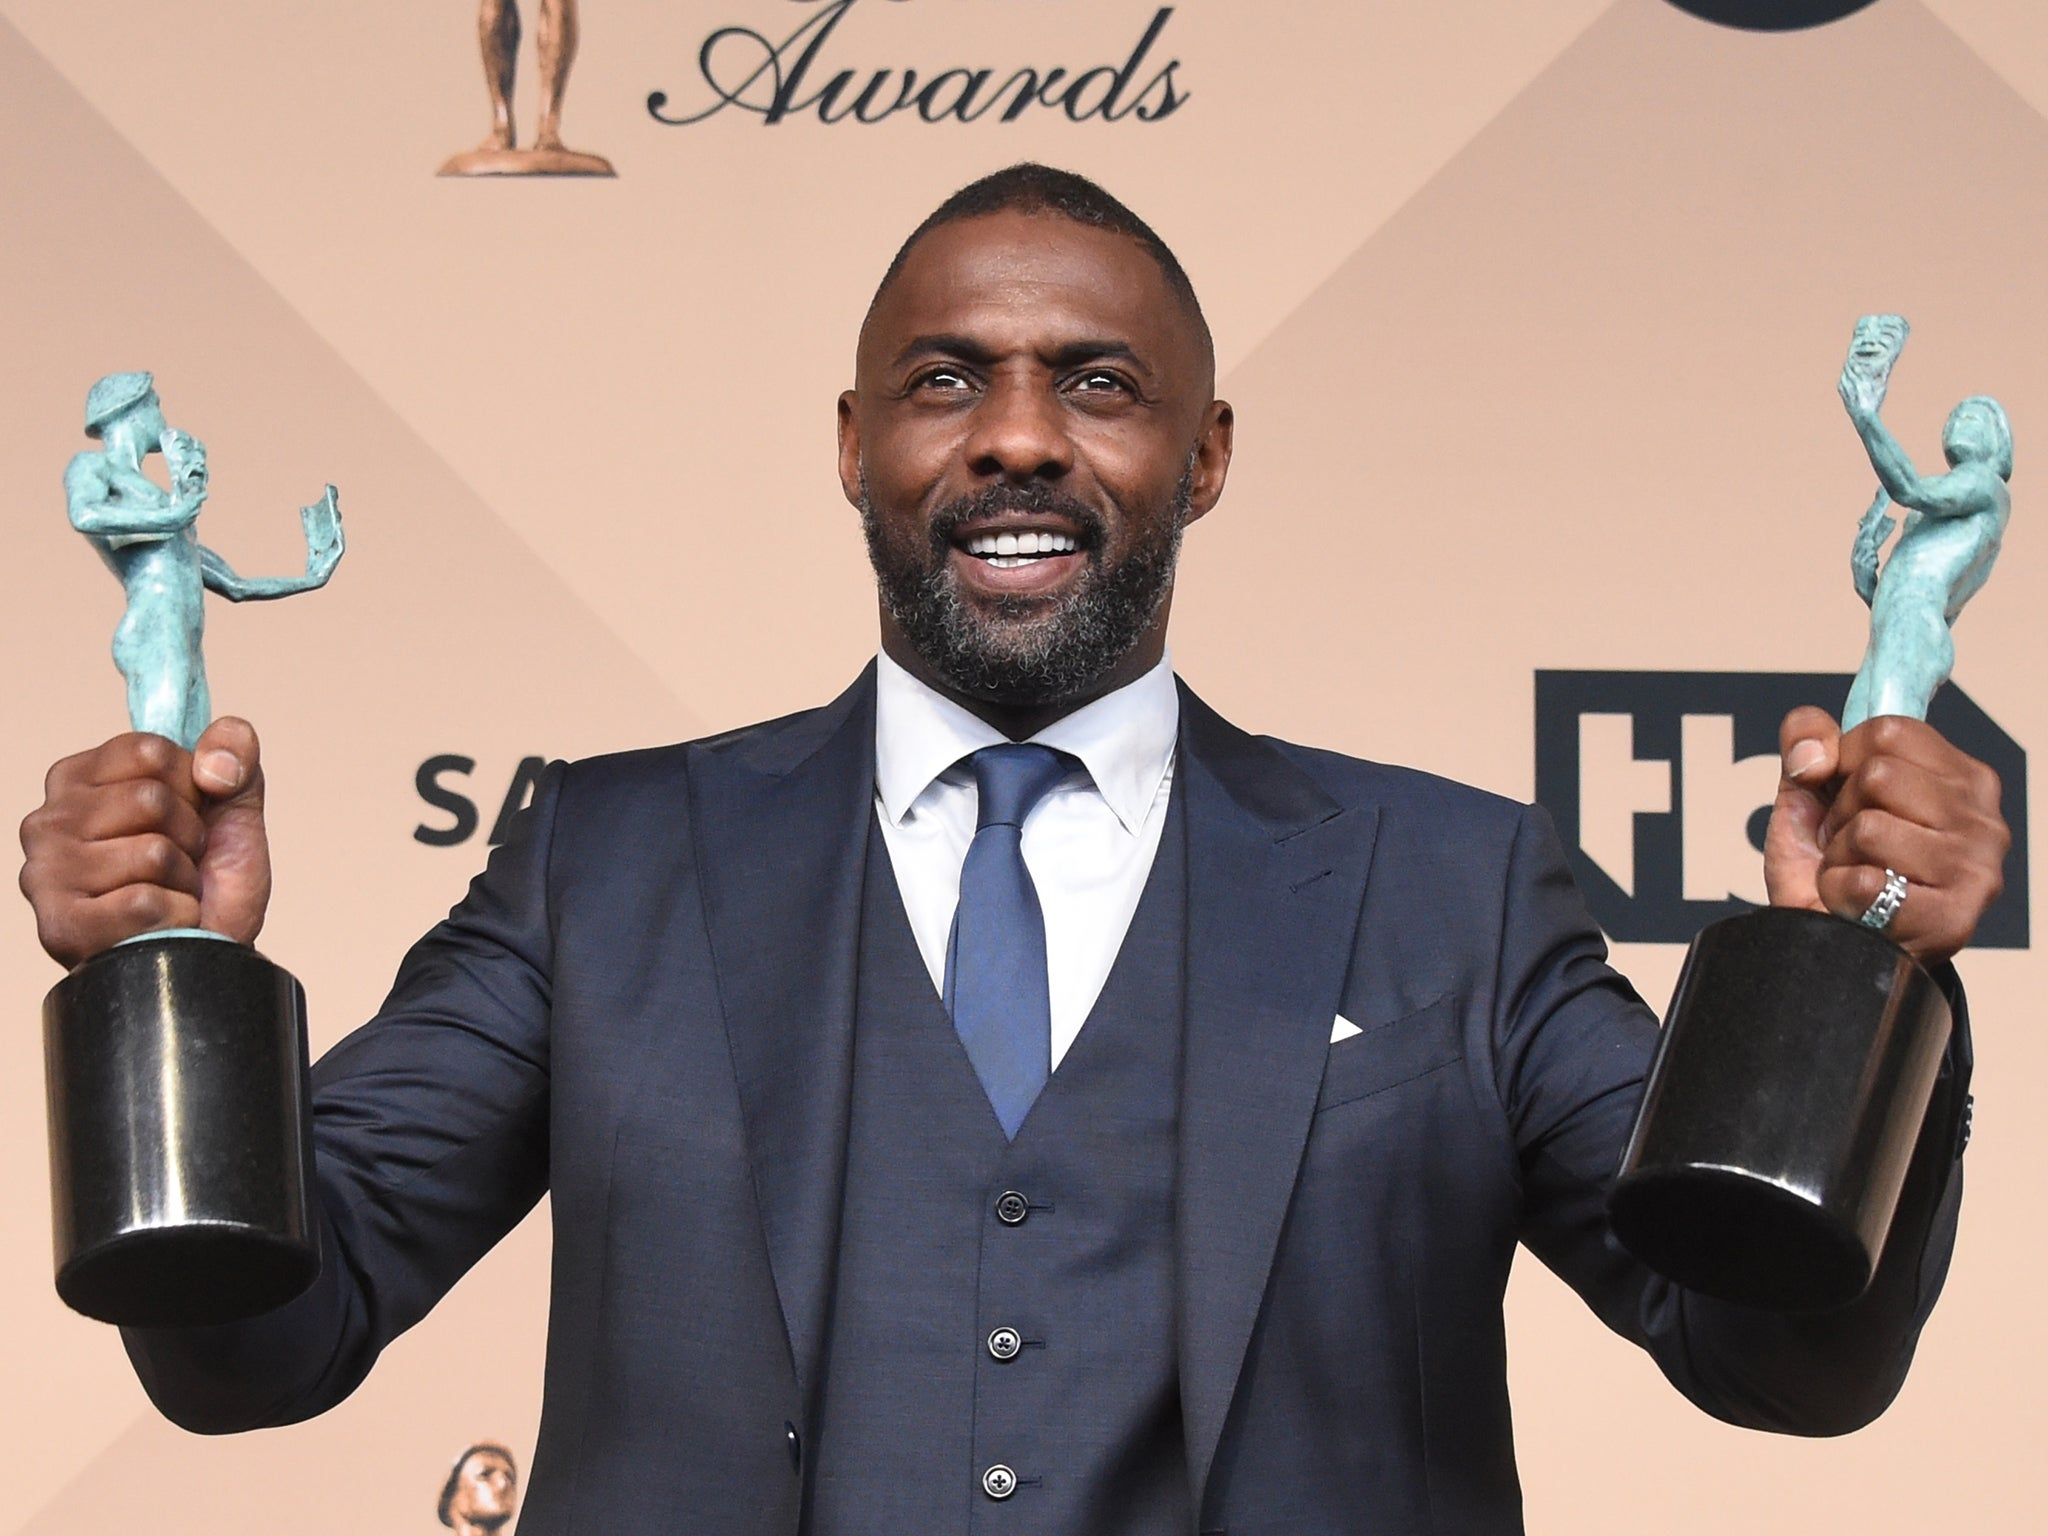 Tom Hiddleston would cause a stir as Bond, but Idris Elba is the only man who could shake up the franchise | Voices | The Independent